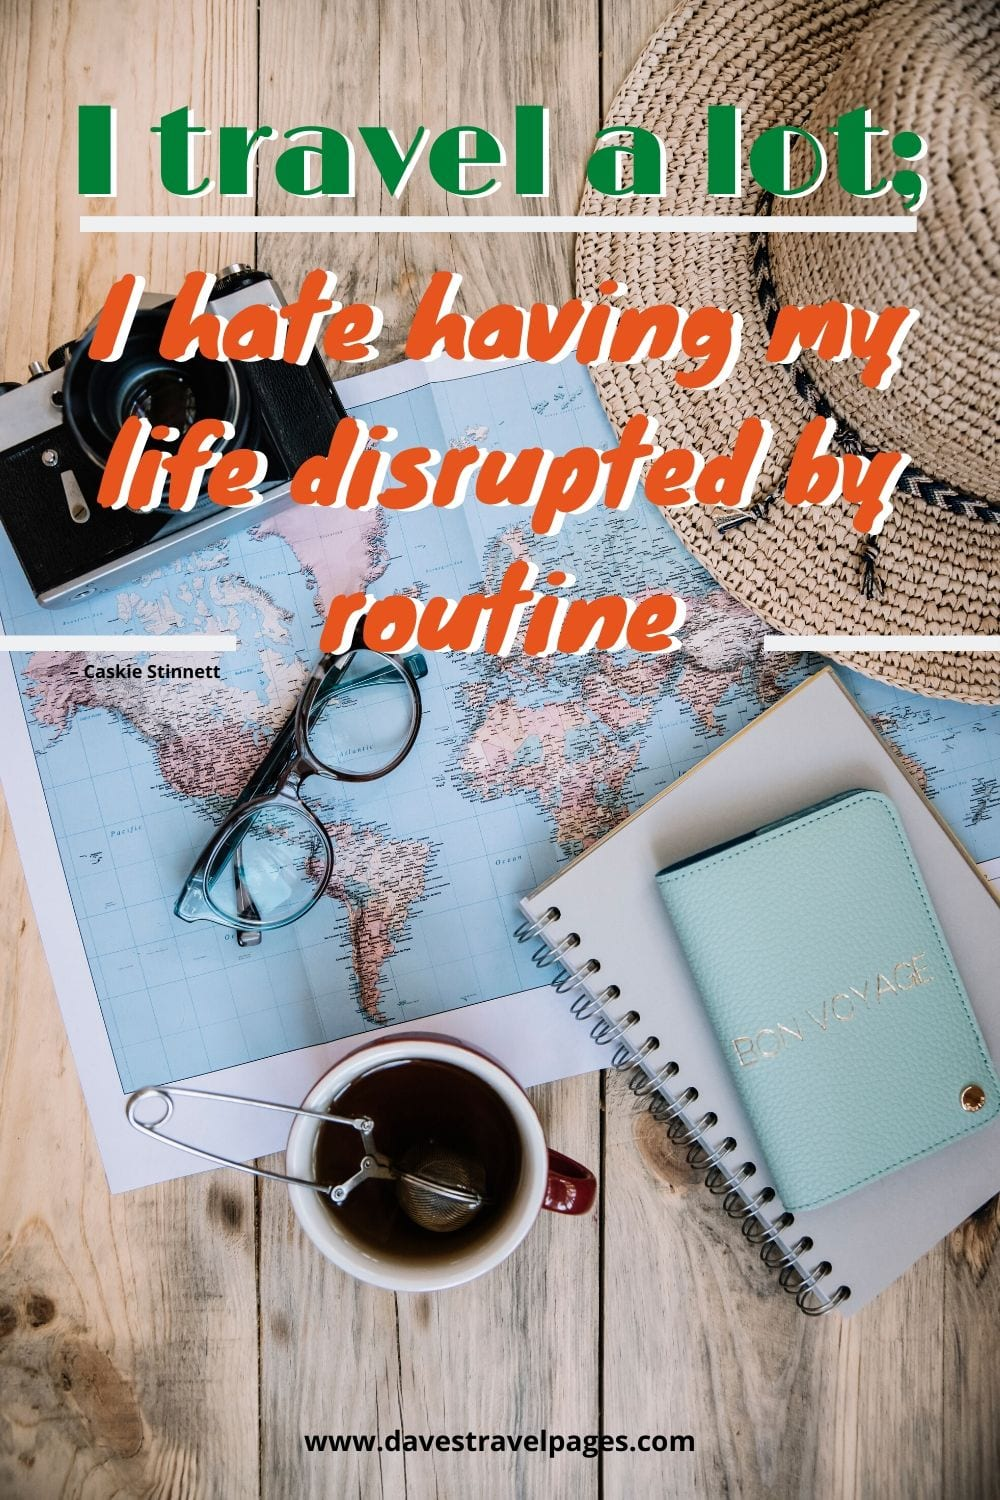 """Traveling quotes: """"I travel a lot; I hate having my life disrupted by routine."""" – Caskie Stinnett"""